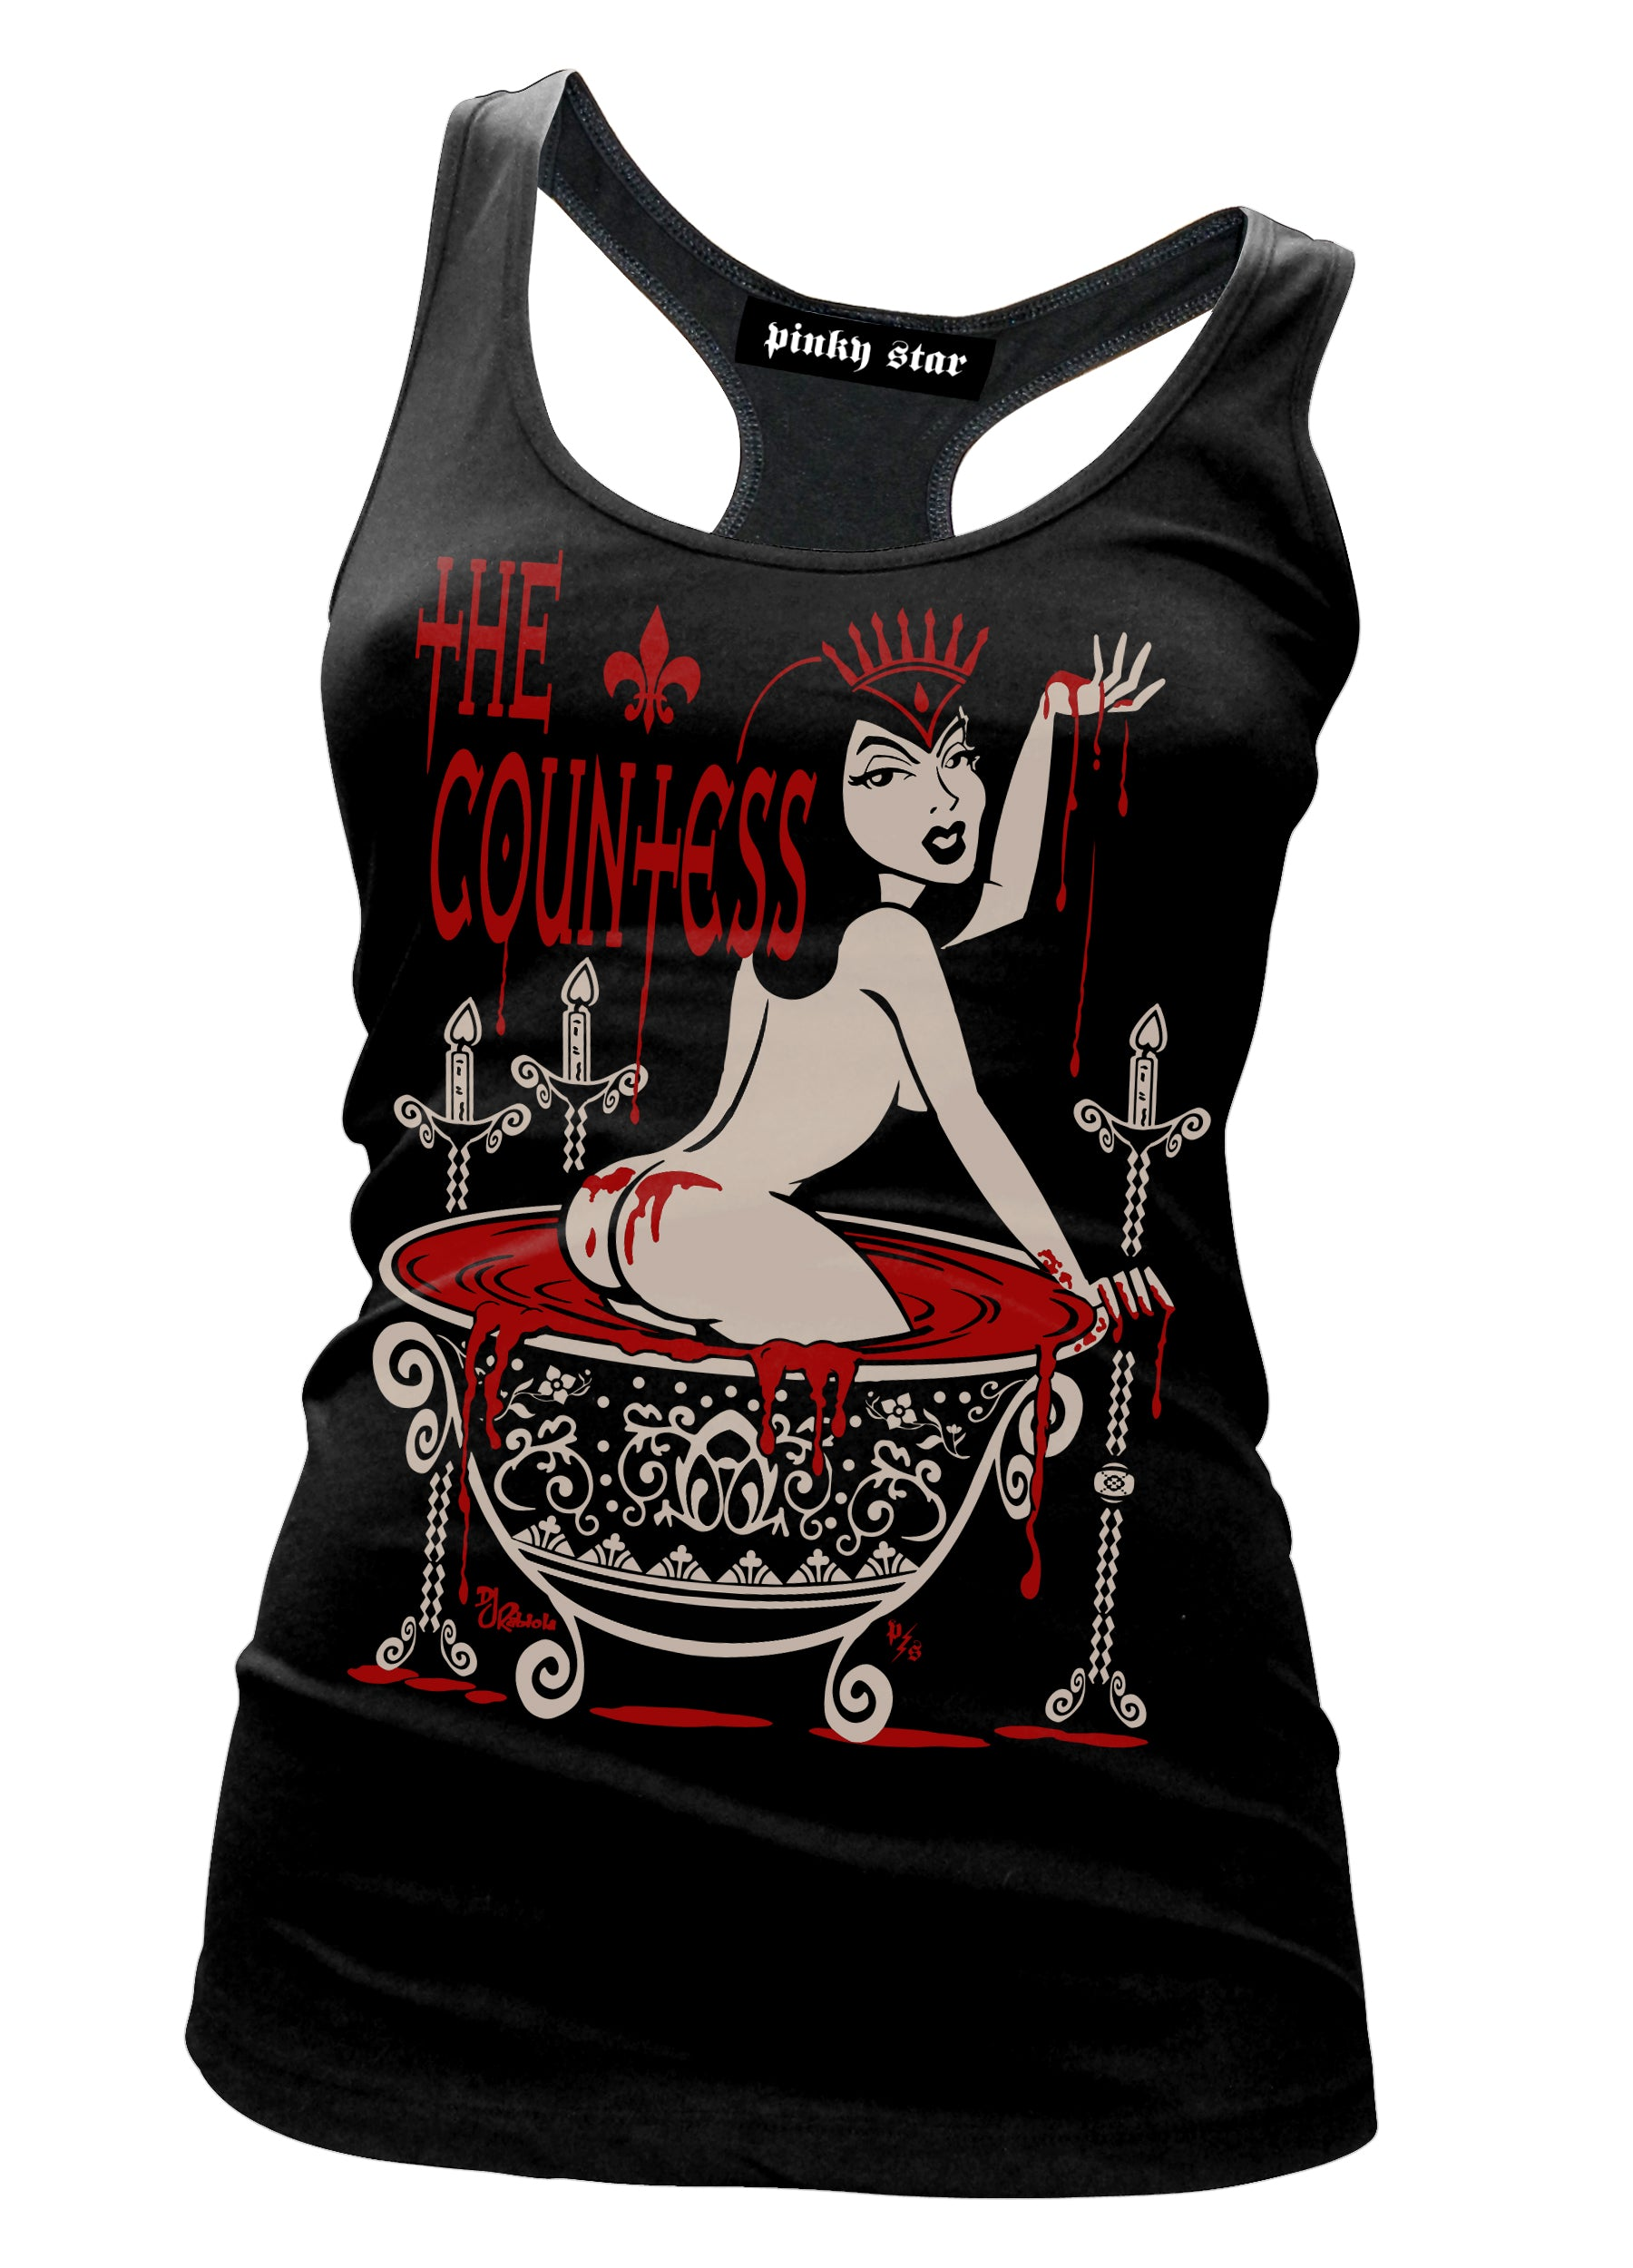 The Countess tank top - Pinky Star